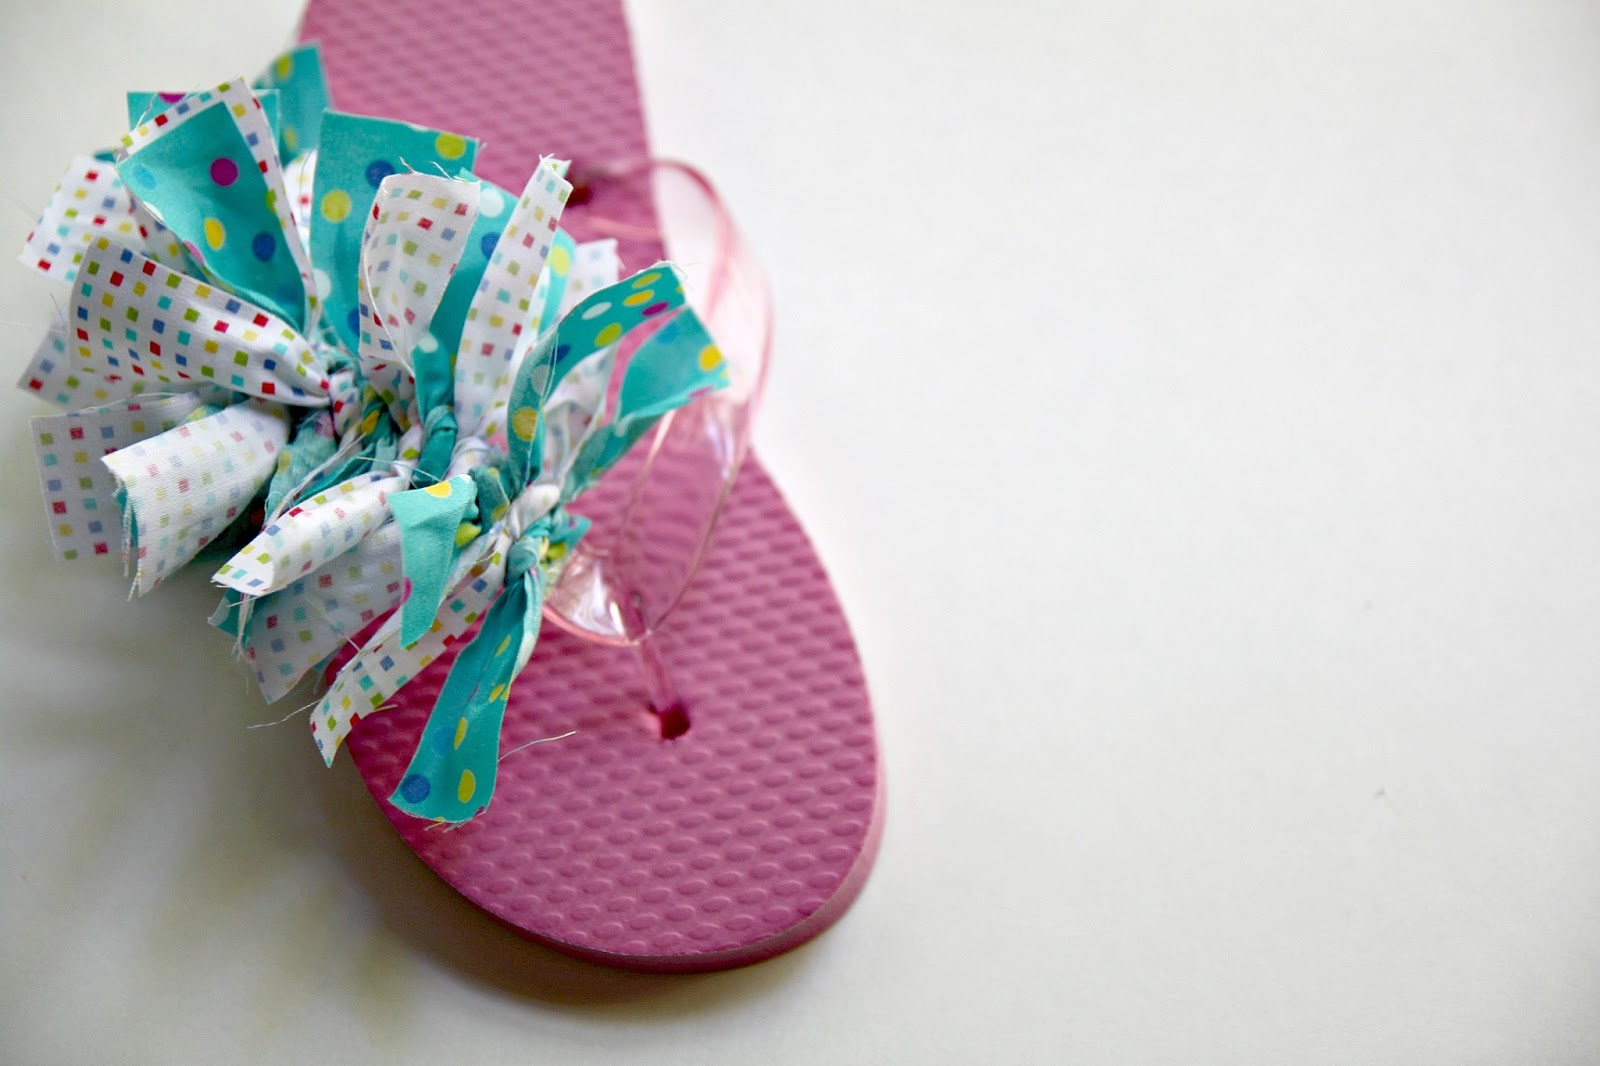 decorating styles weekly flop flops beautify smart tutorials diy your flip to ideas cute decor